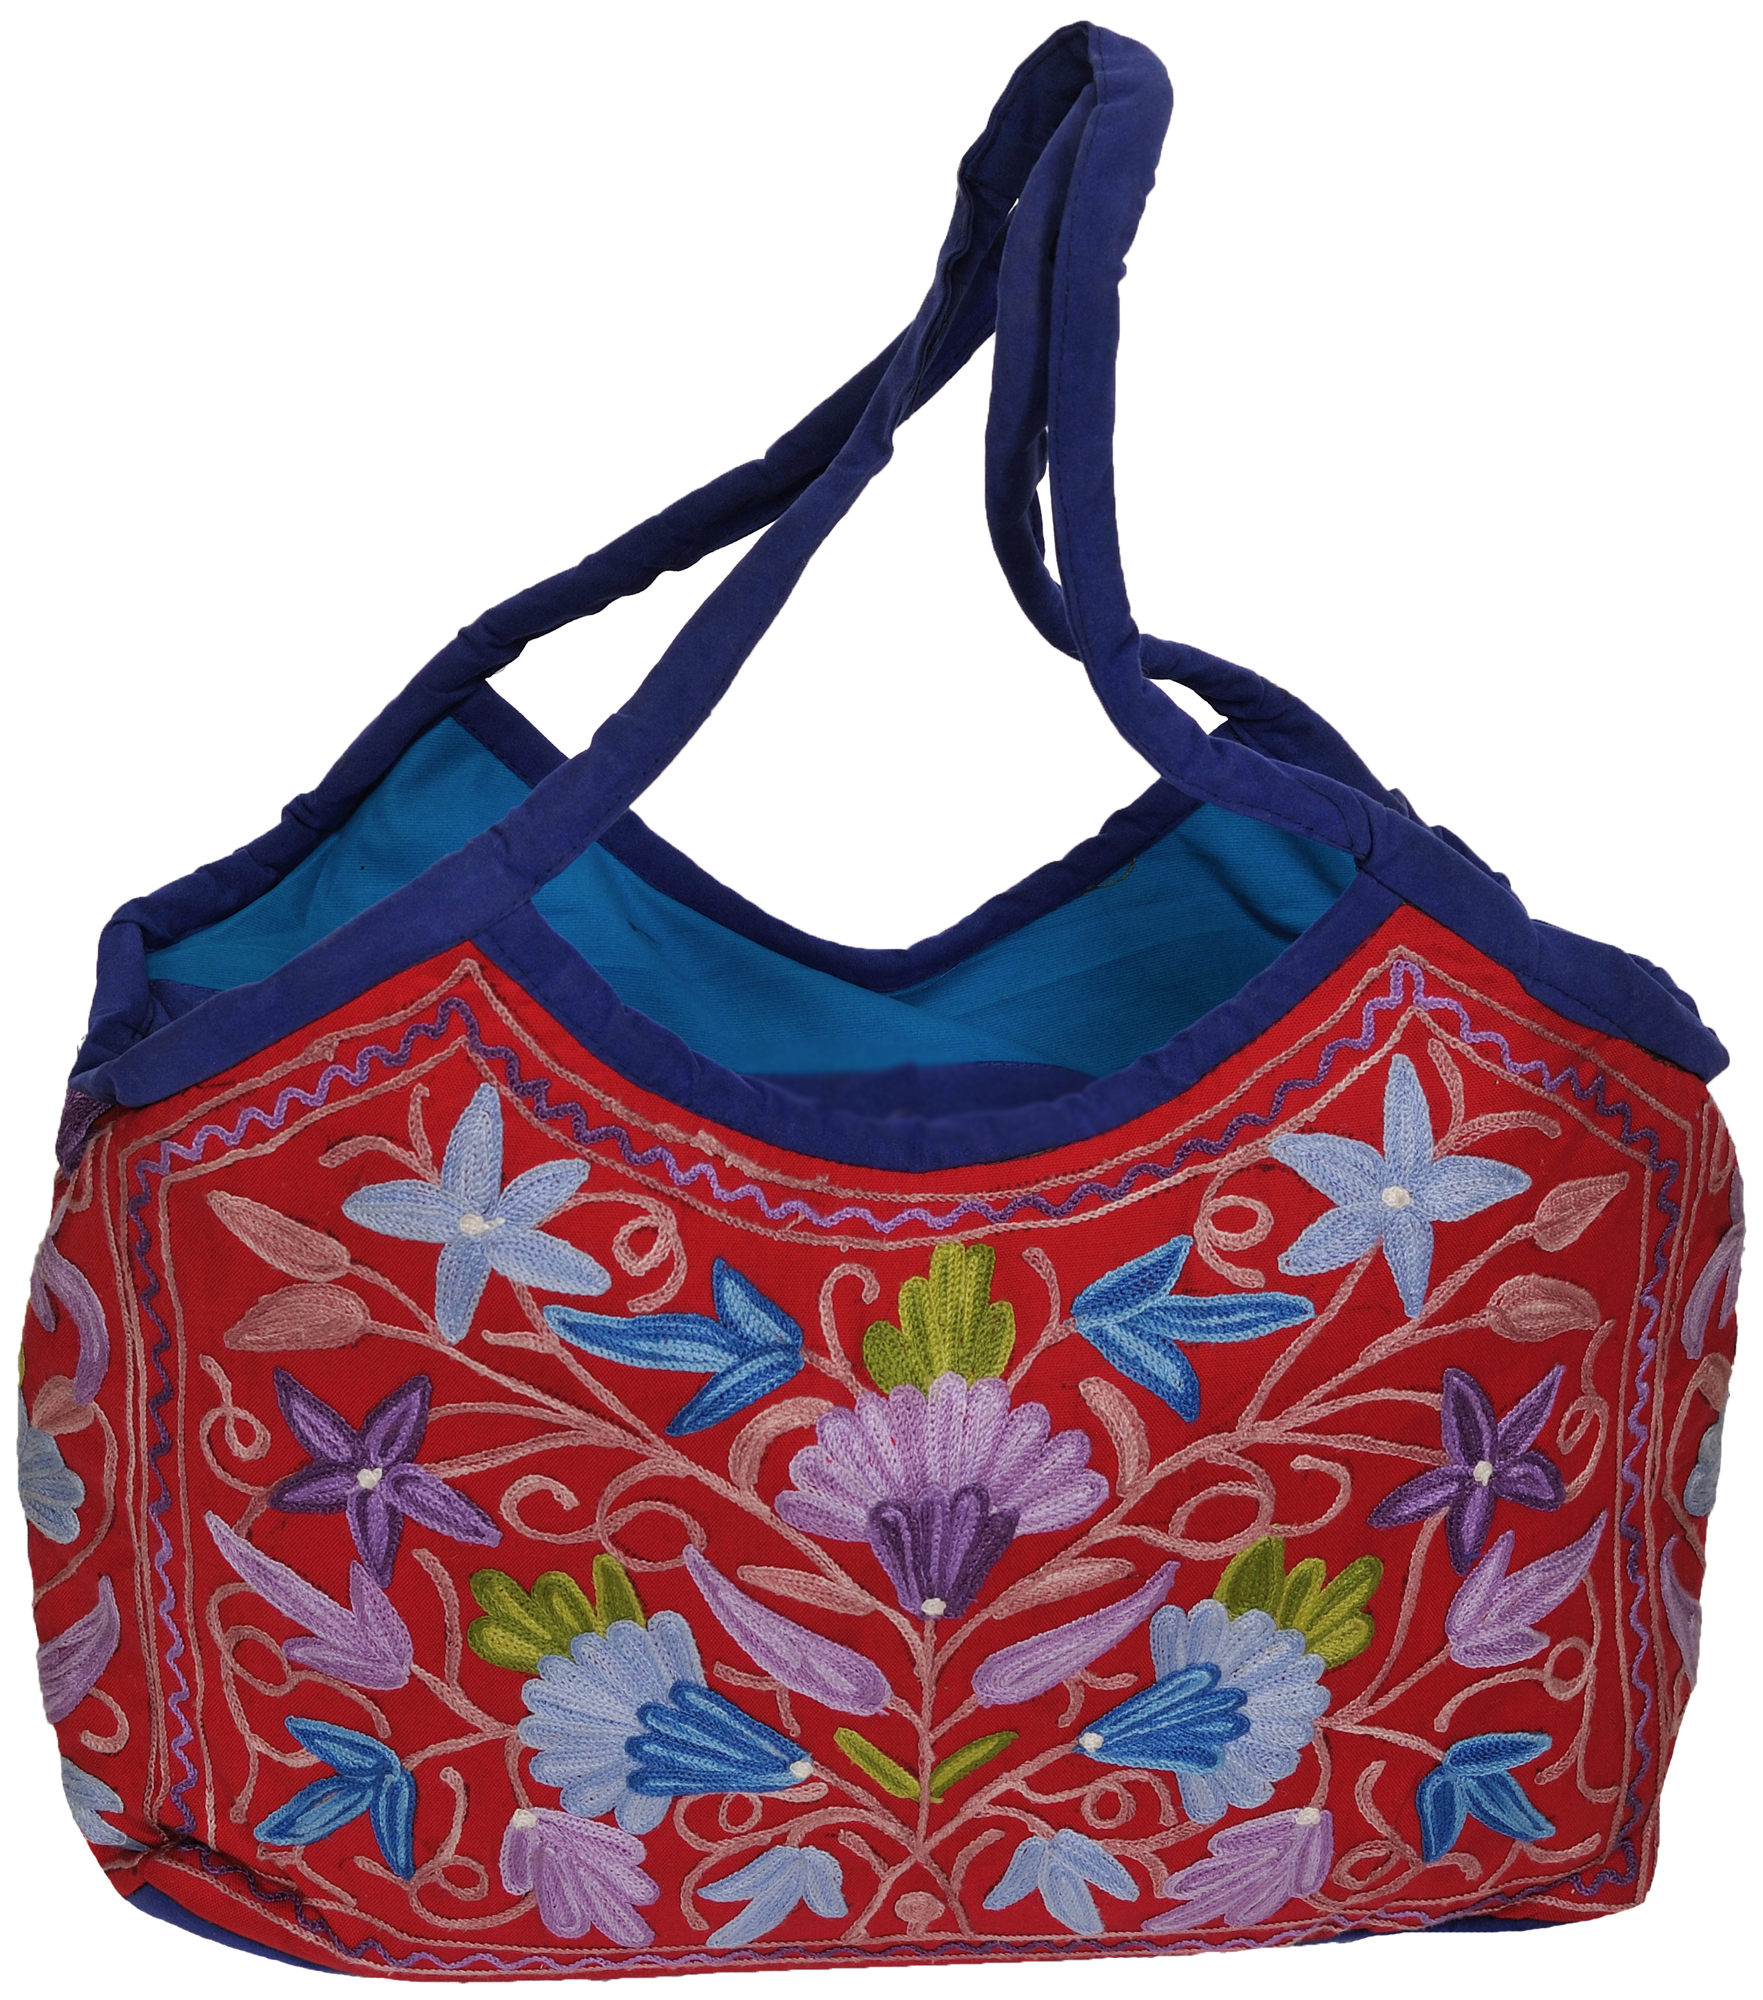 Red and blue shopper bag from kashmir with ari embroidered